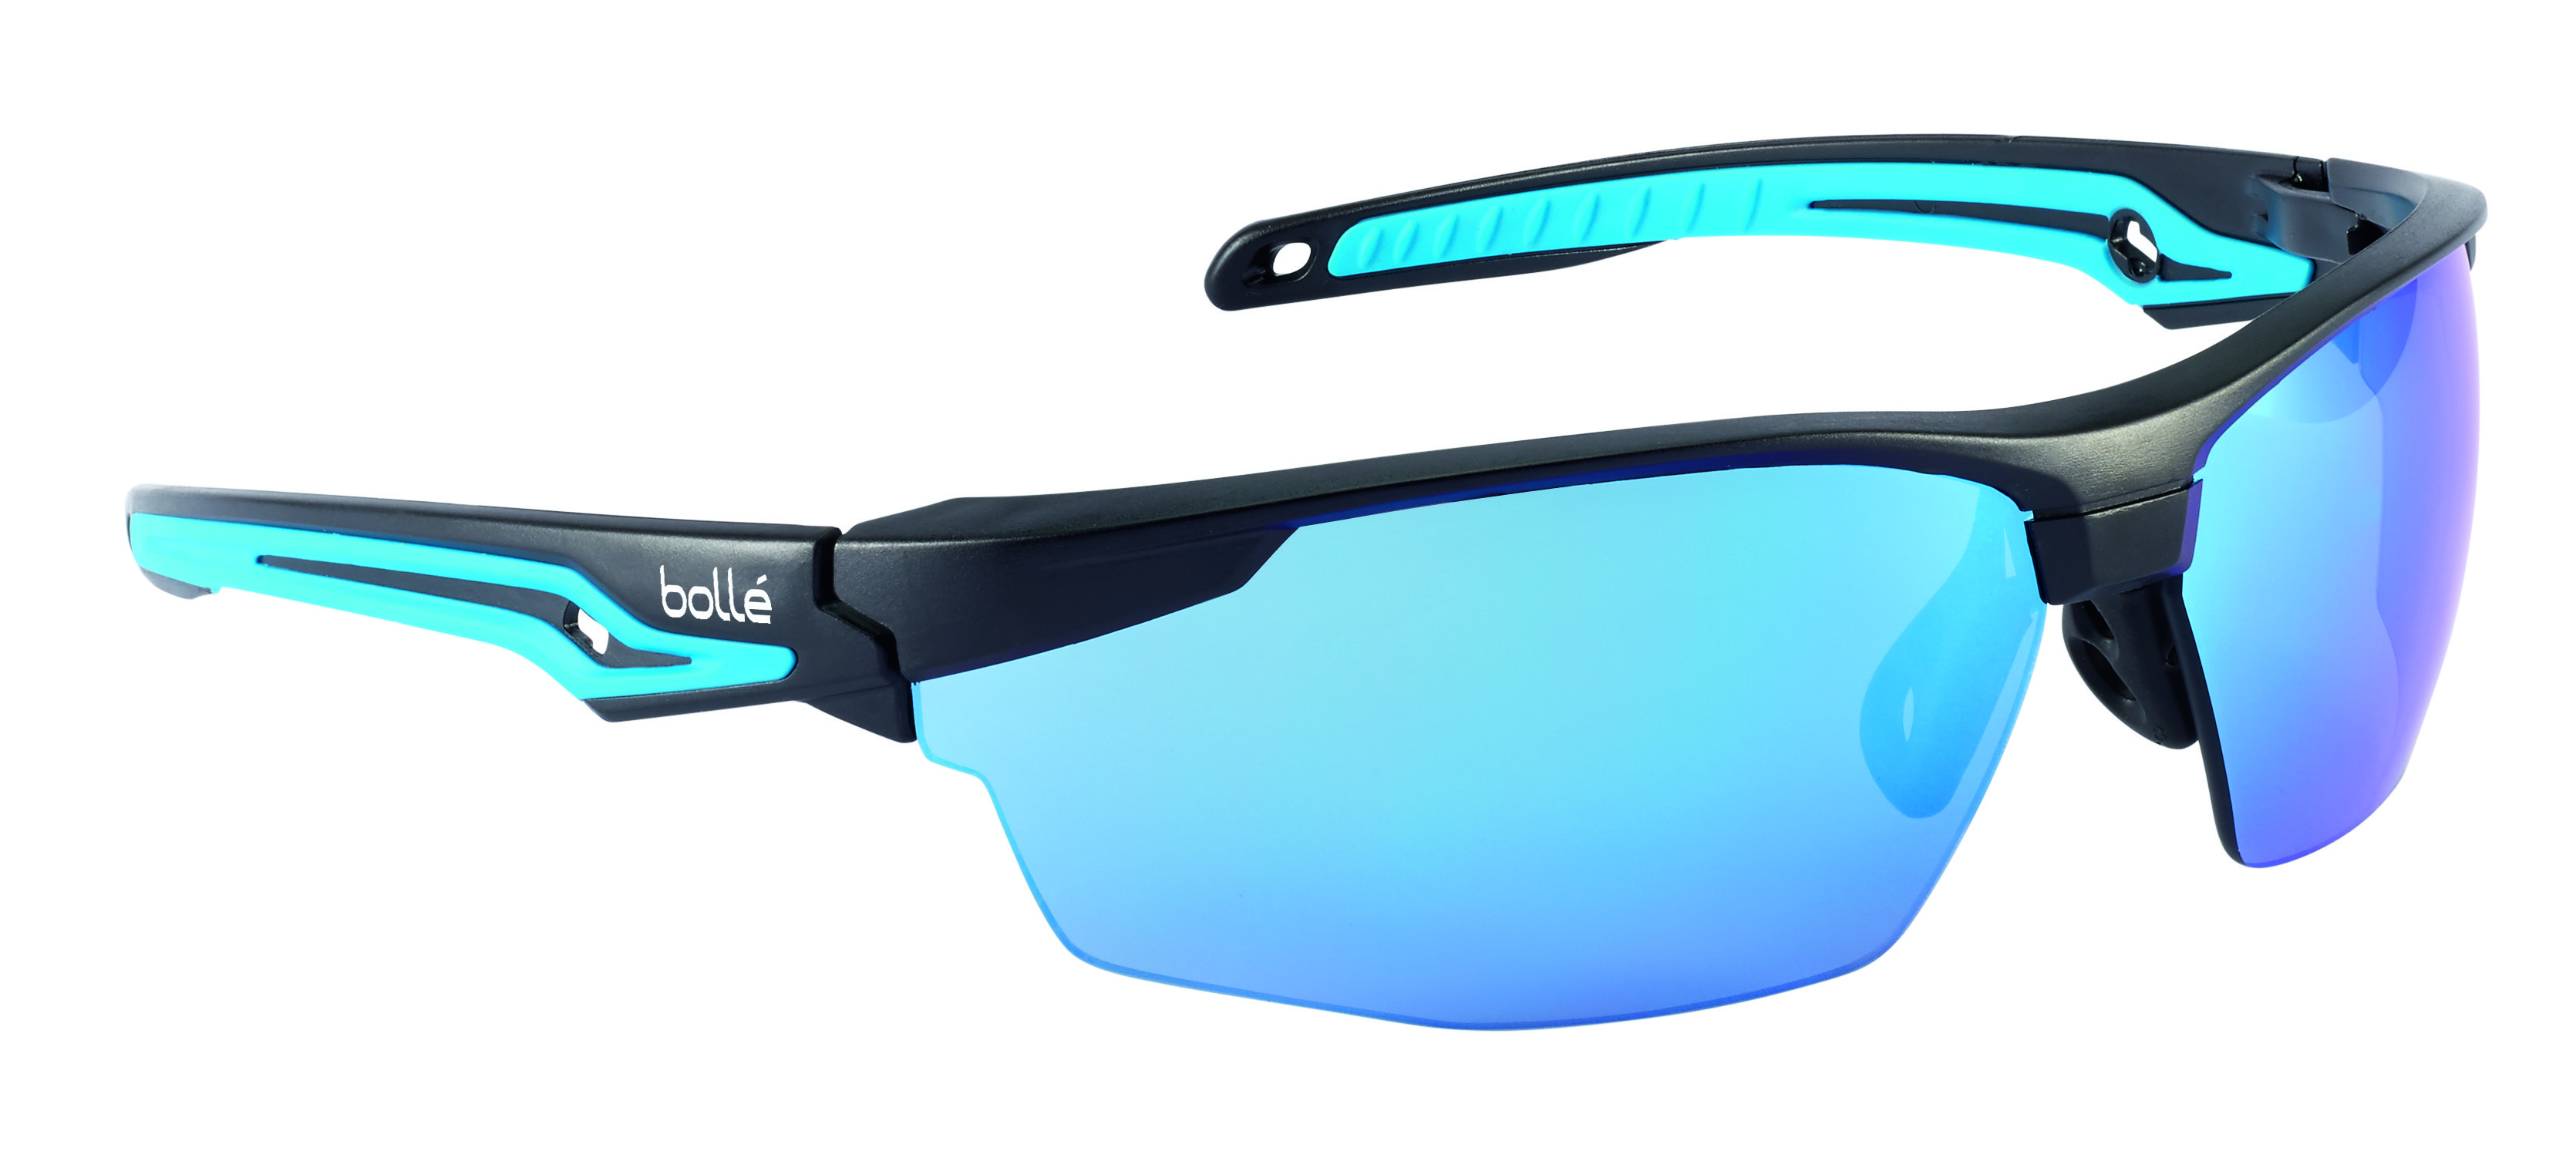 40304 - Tryon Safety Glasses-Black/Blue Frame - Blue Flash Anti-Scratch Lens Coating-----UOM: 1/EA